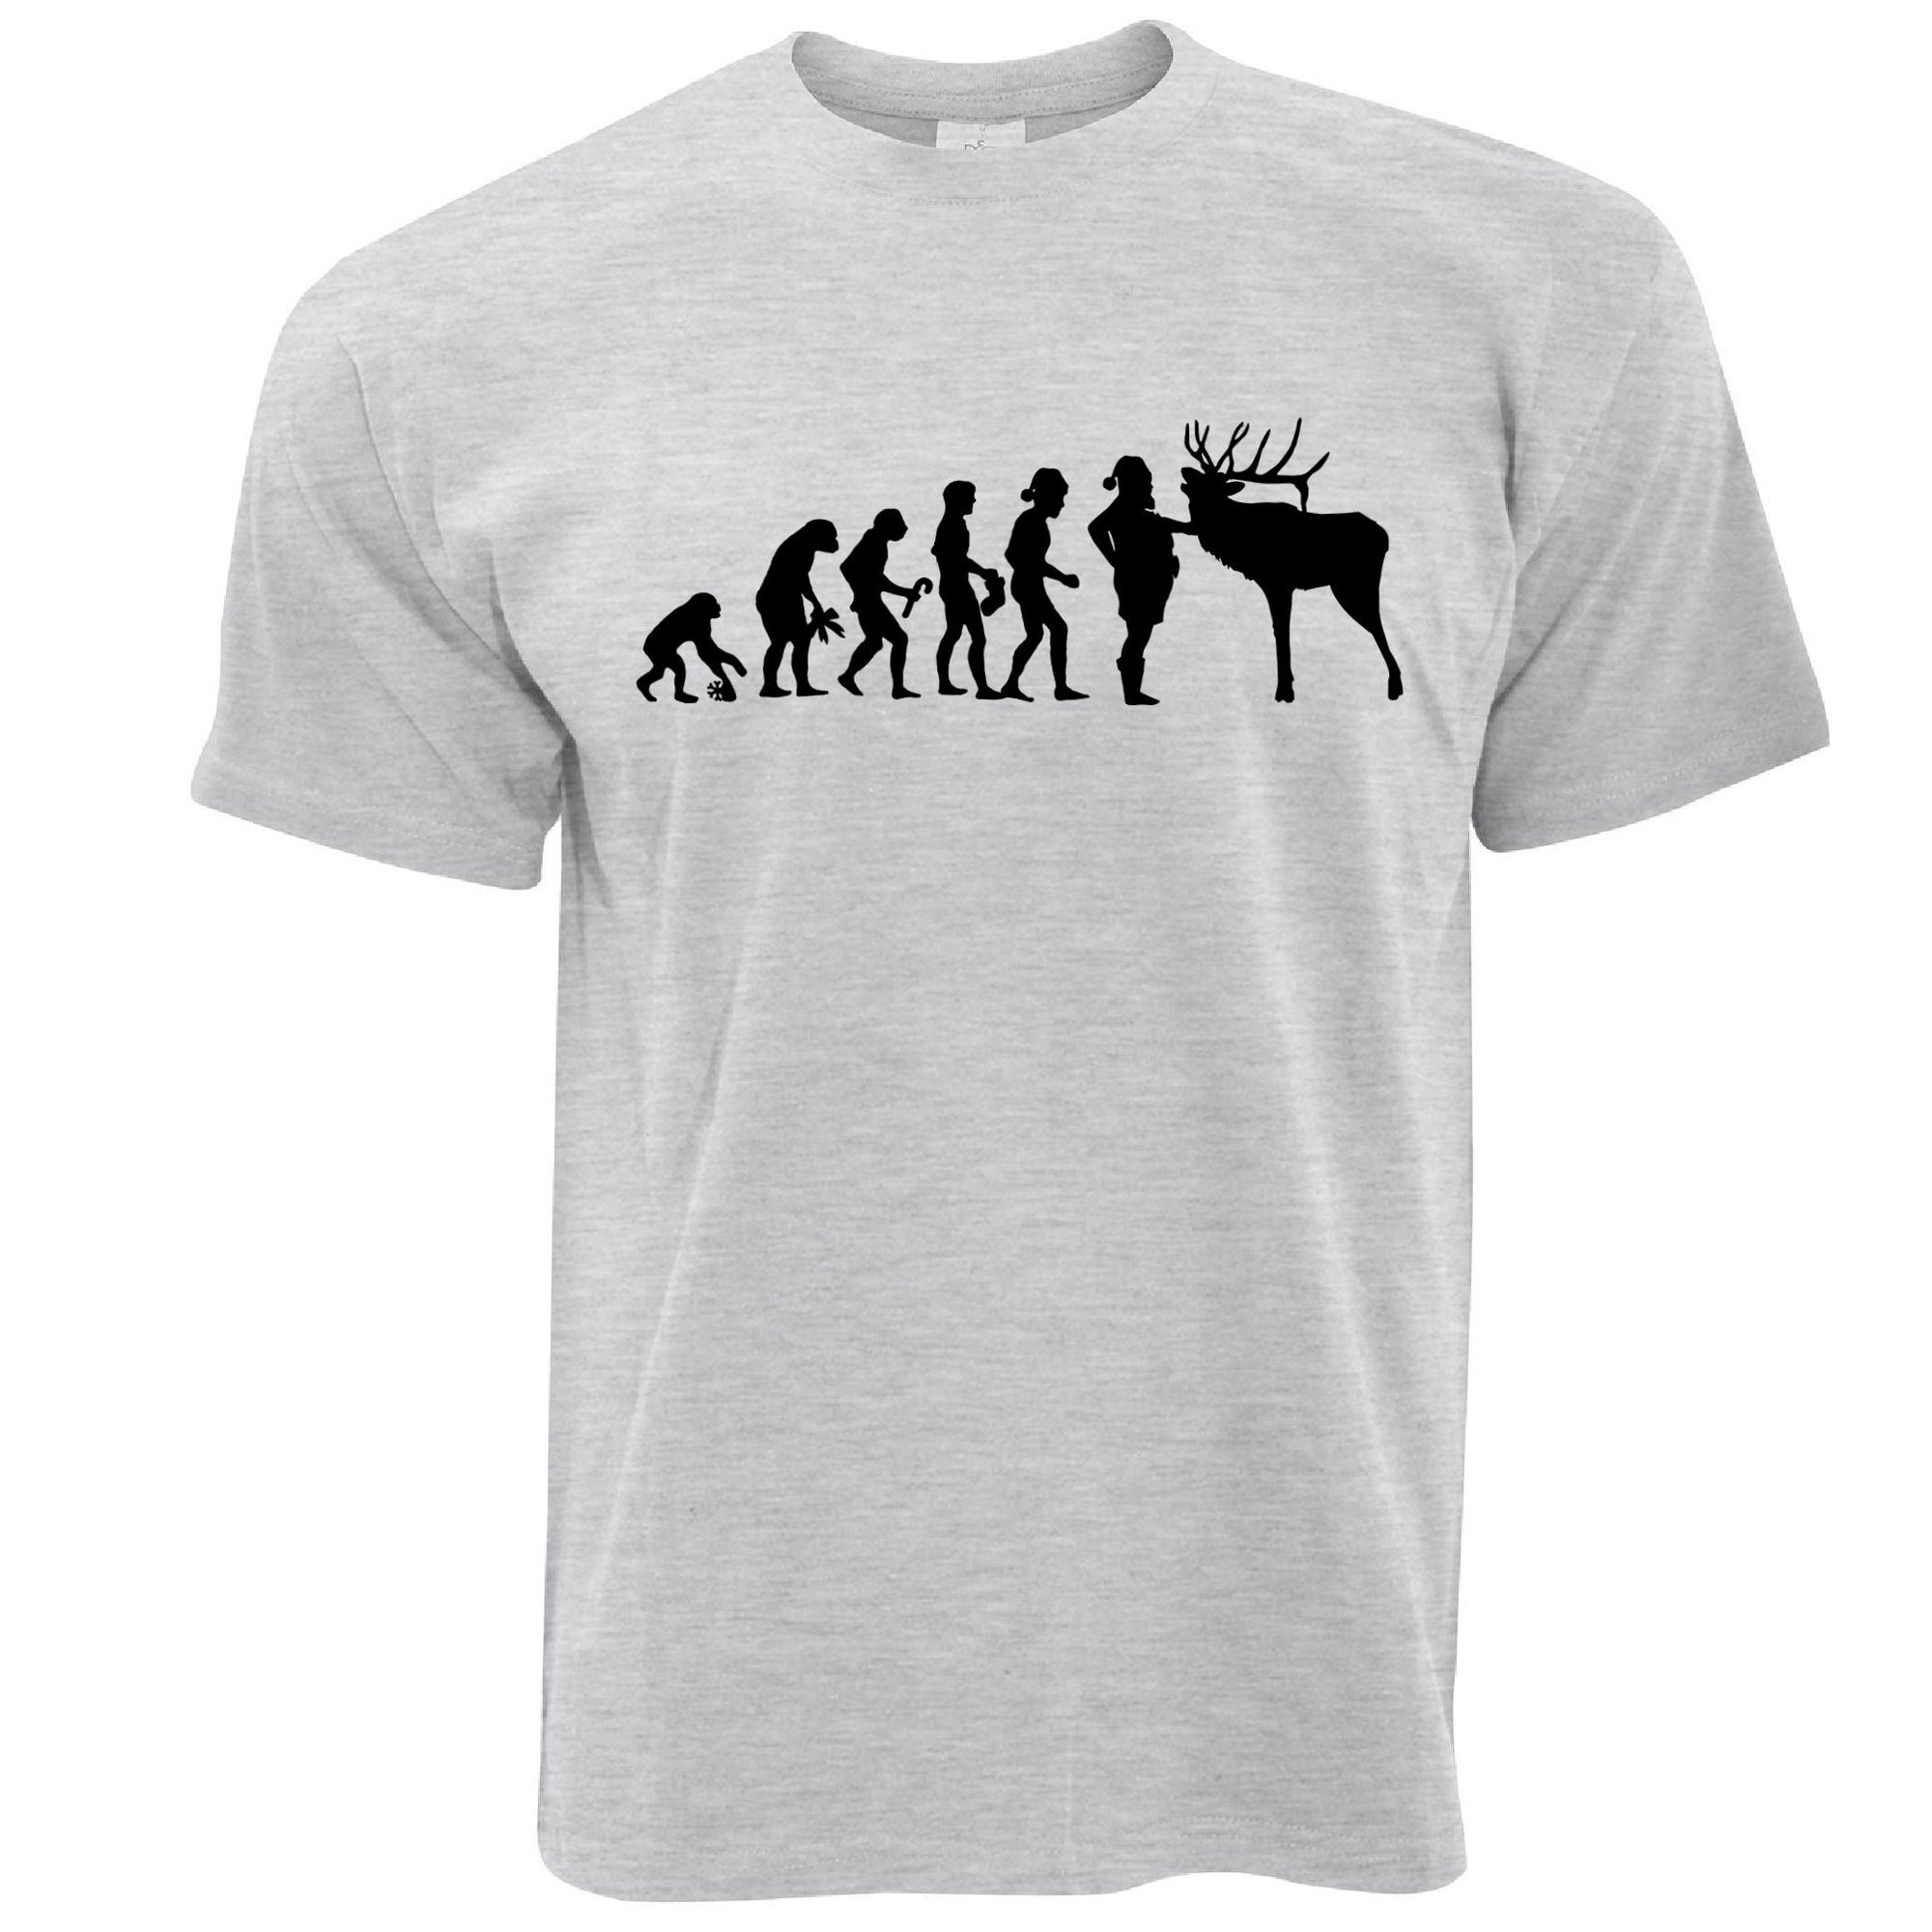 Novelty Christmas T Shirt Evolution Of Xmas Holiday